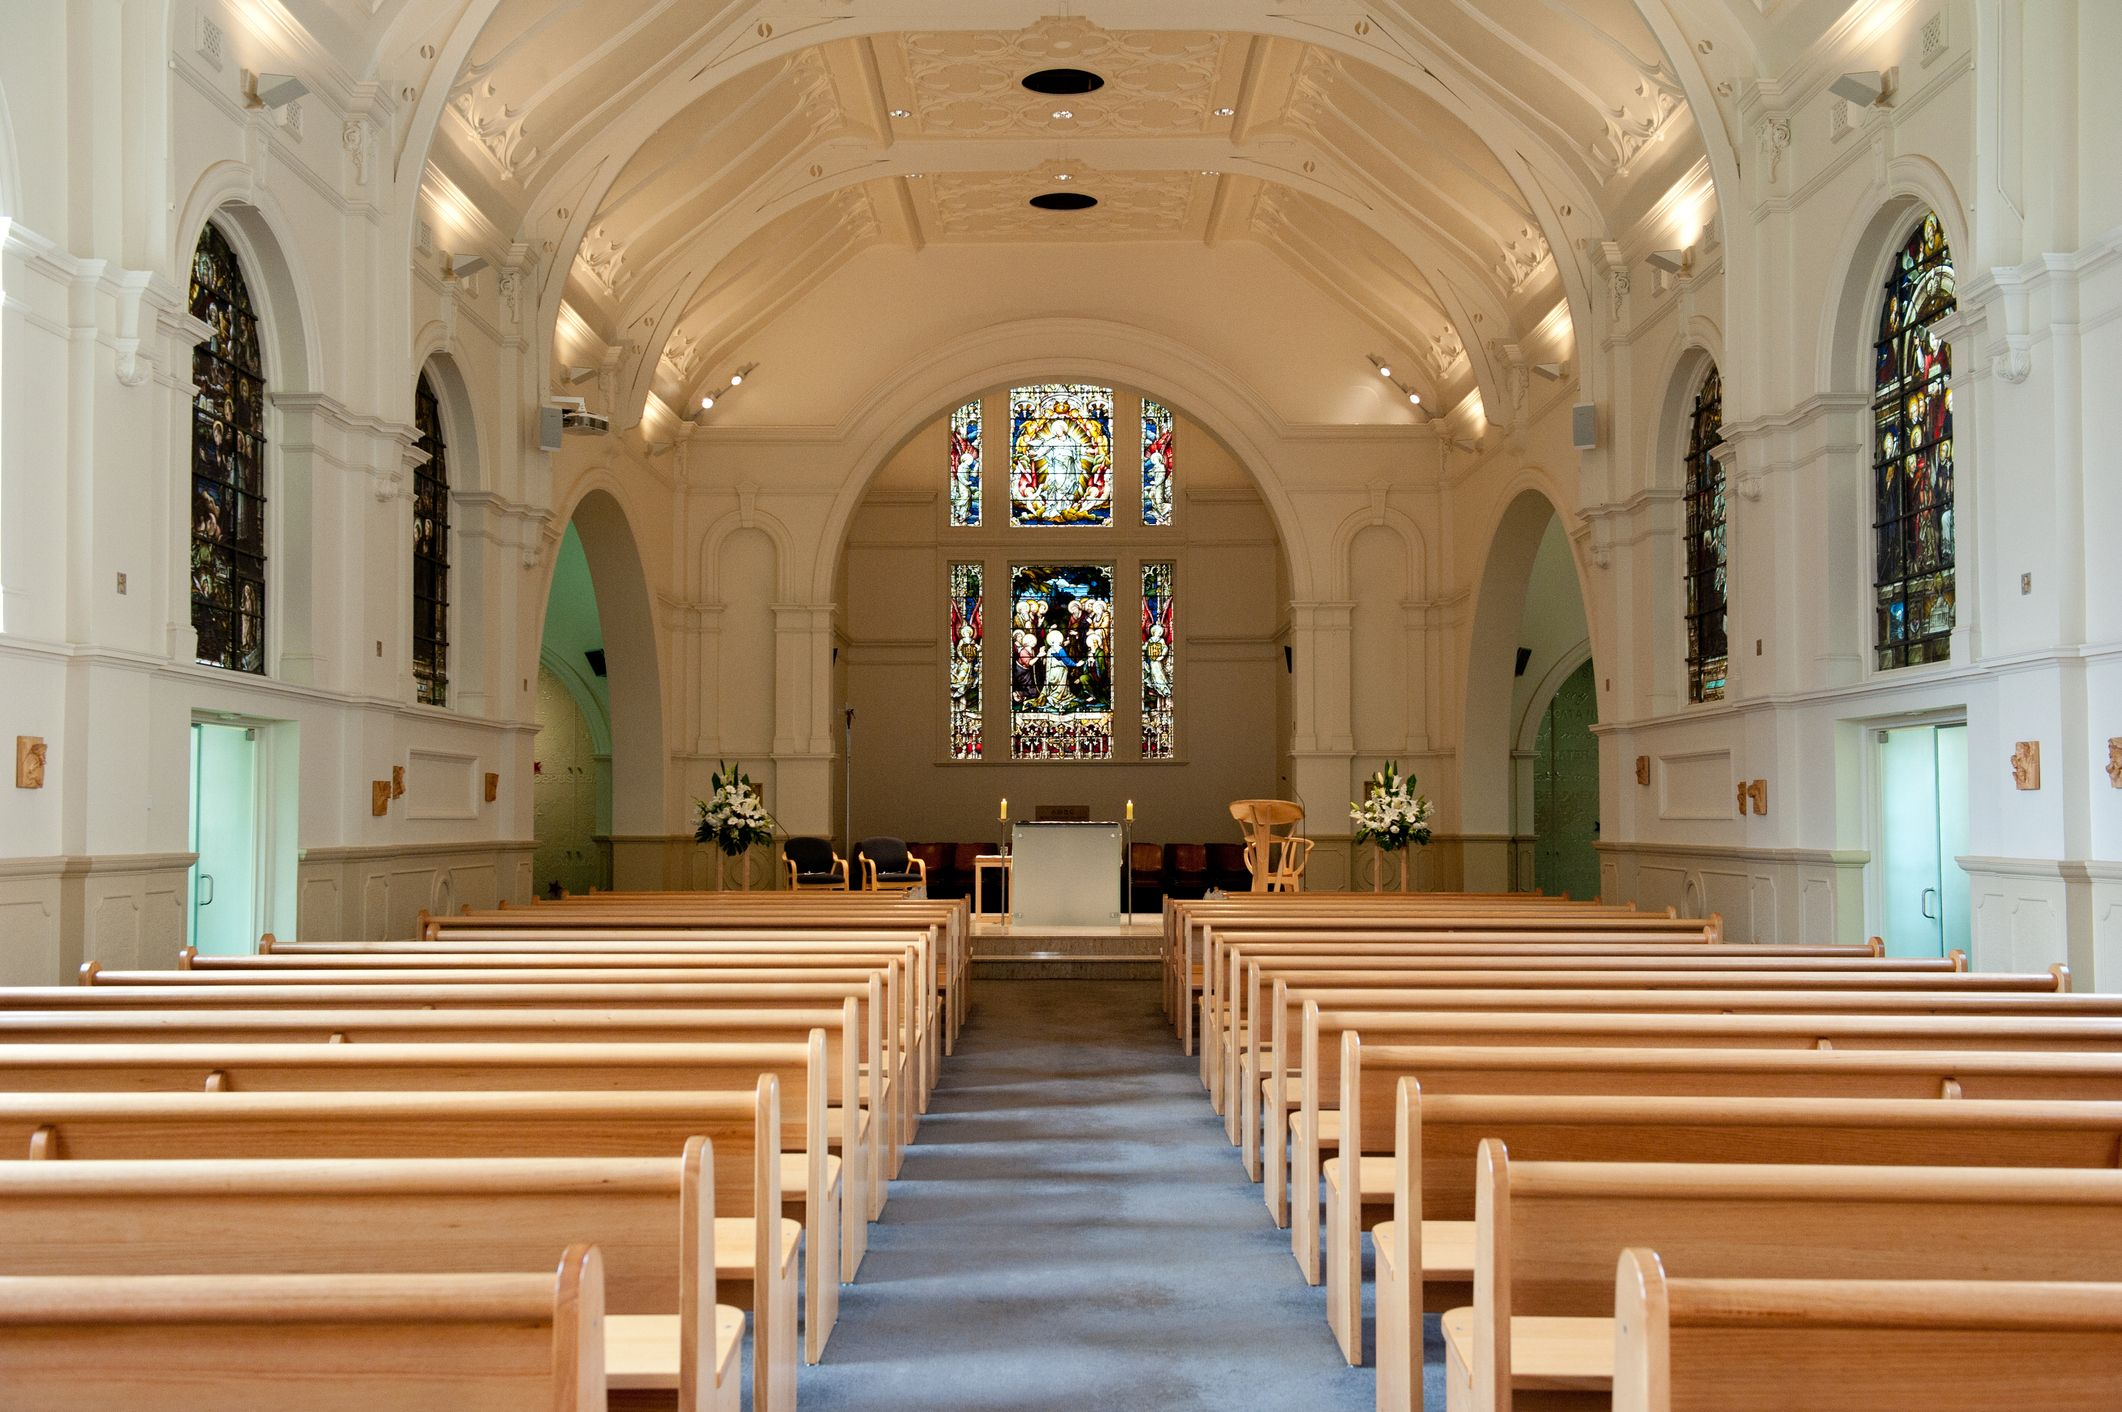 A glimpse of a church's interior.   Source: Getty Images